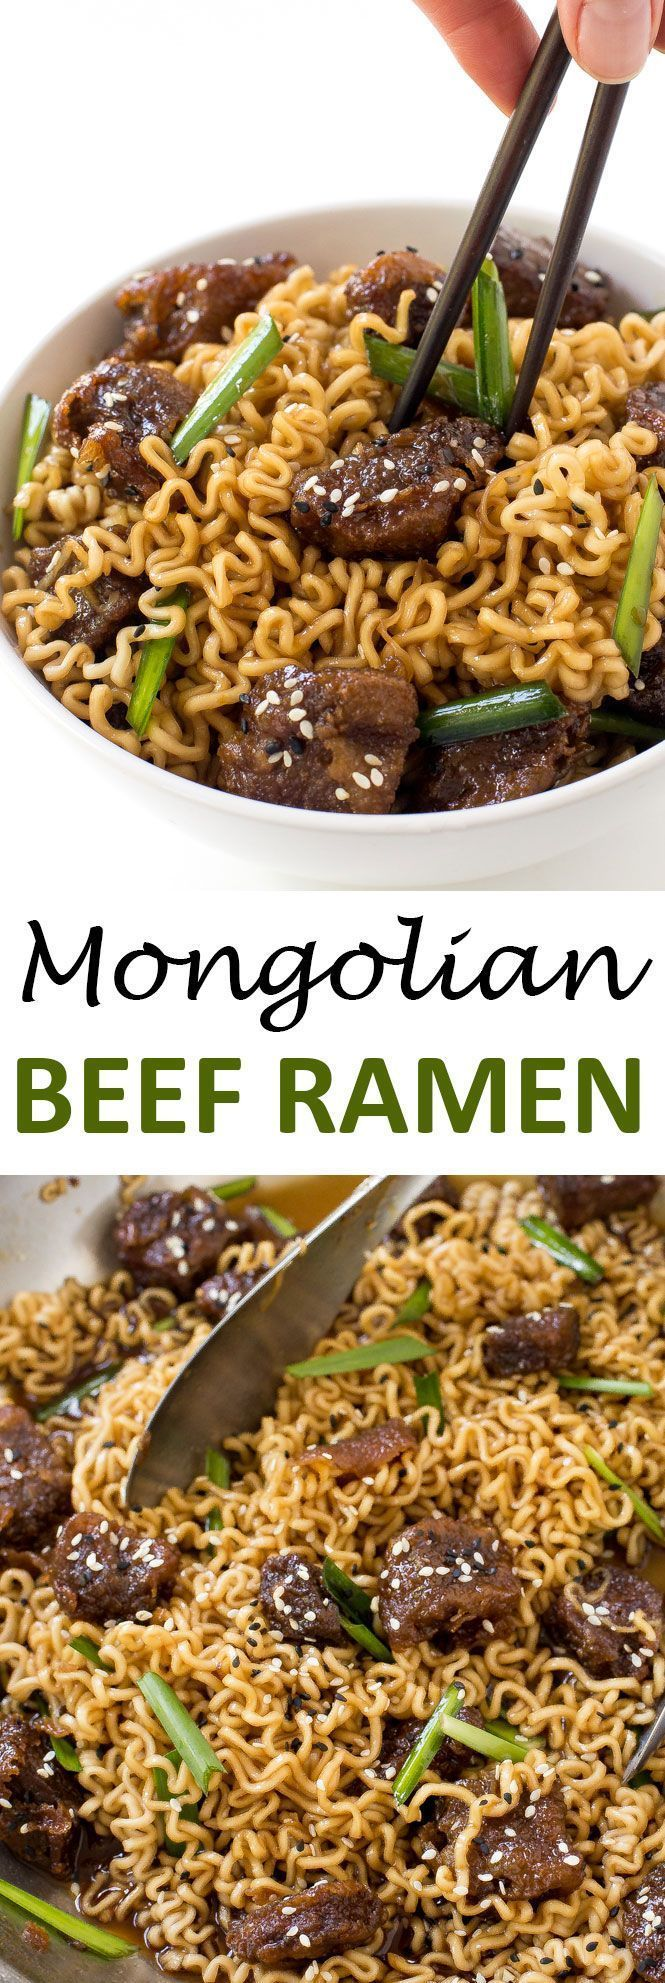 Mongolian Beef Ramen. Just like PF Changs Mongolian Beef but with Ramen Noodles! Ready in less than 30 minutes. chefsavvy.com